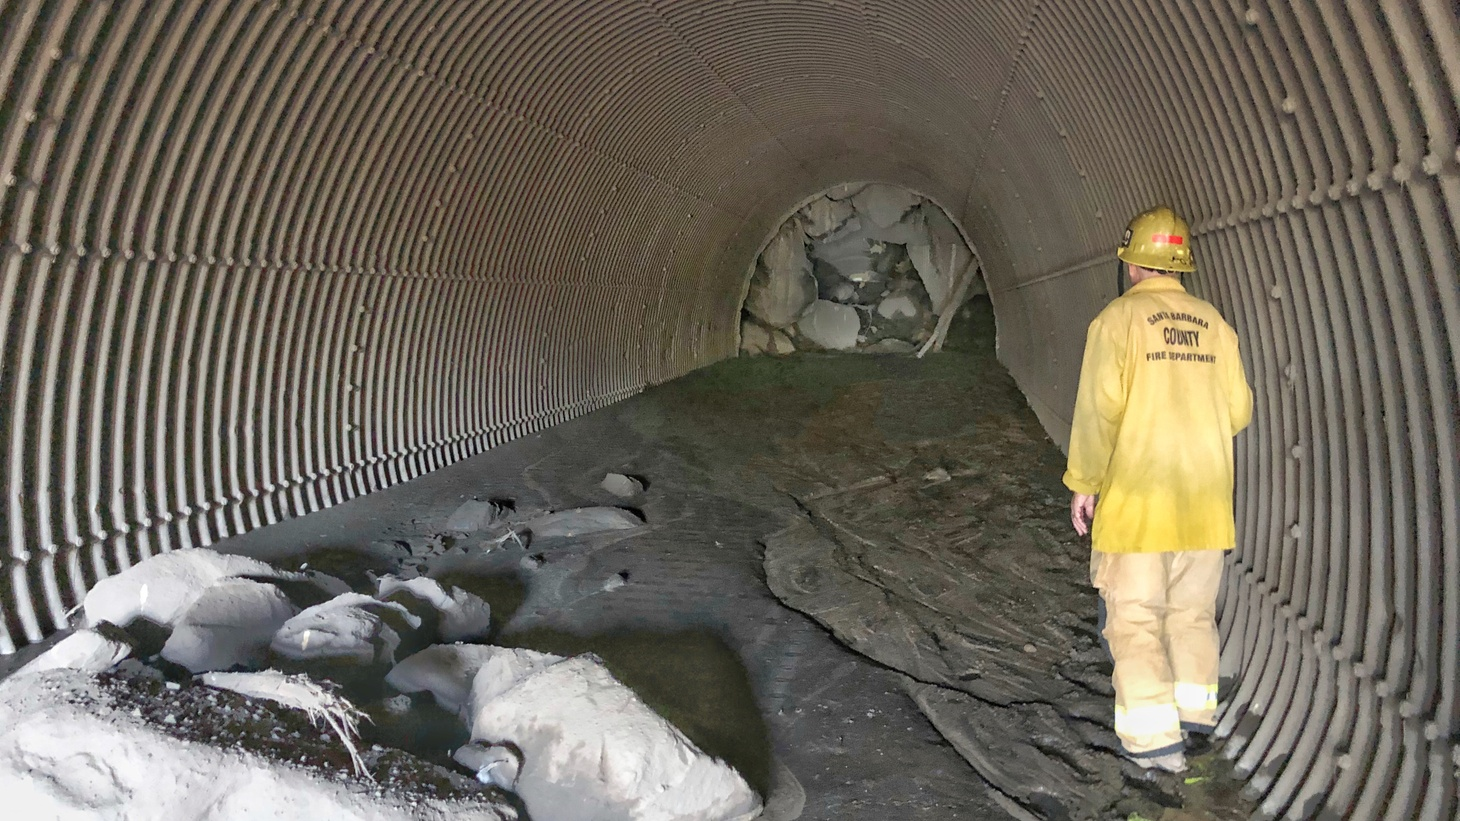 Edison alleges Santa Barbara County failed to improve or maintain its debris basins, causing boulders and debris to travel into urban areas and leading to death and destruction.